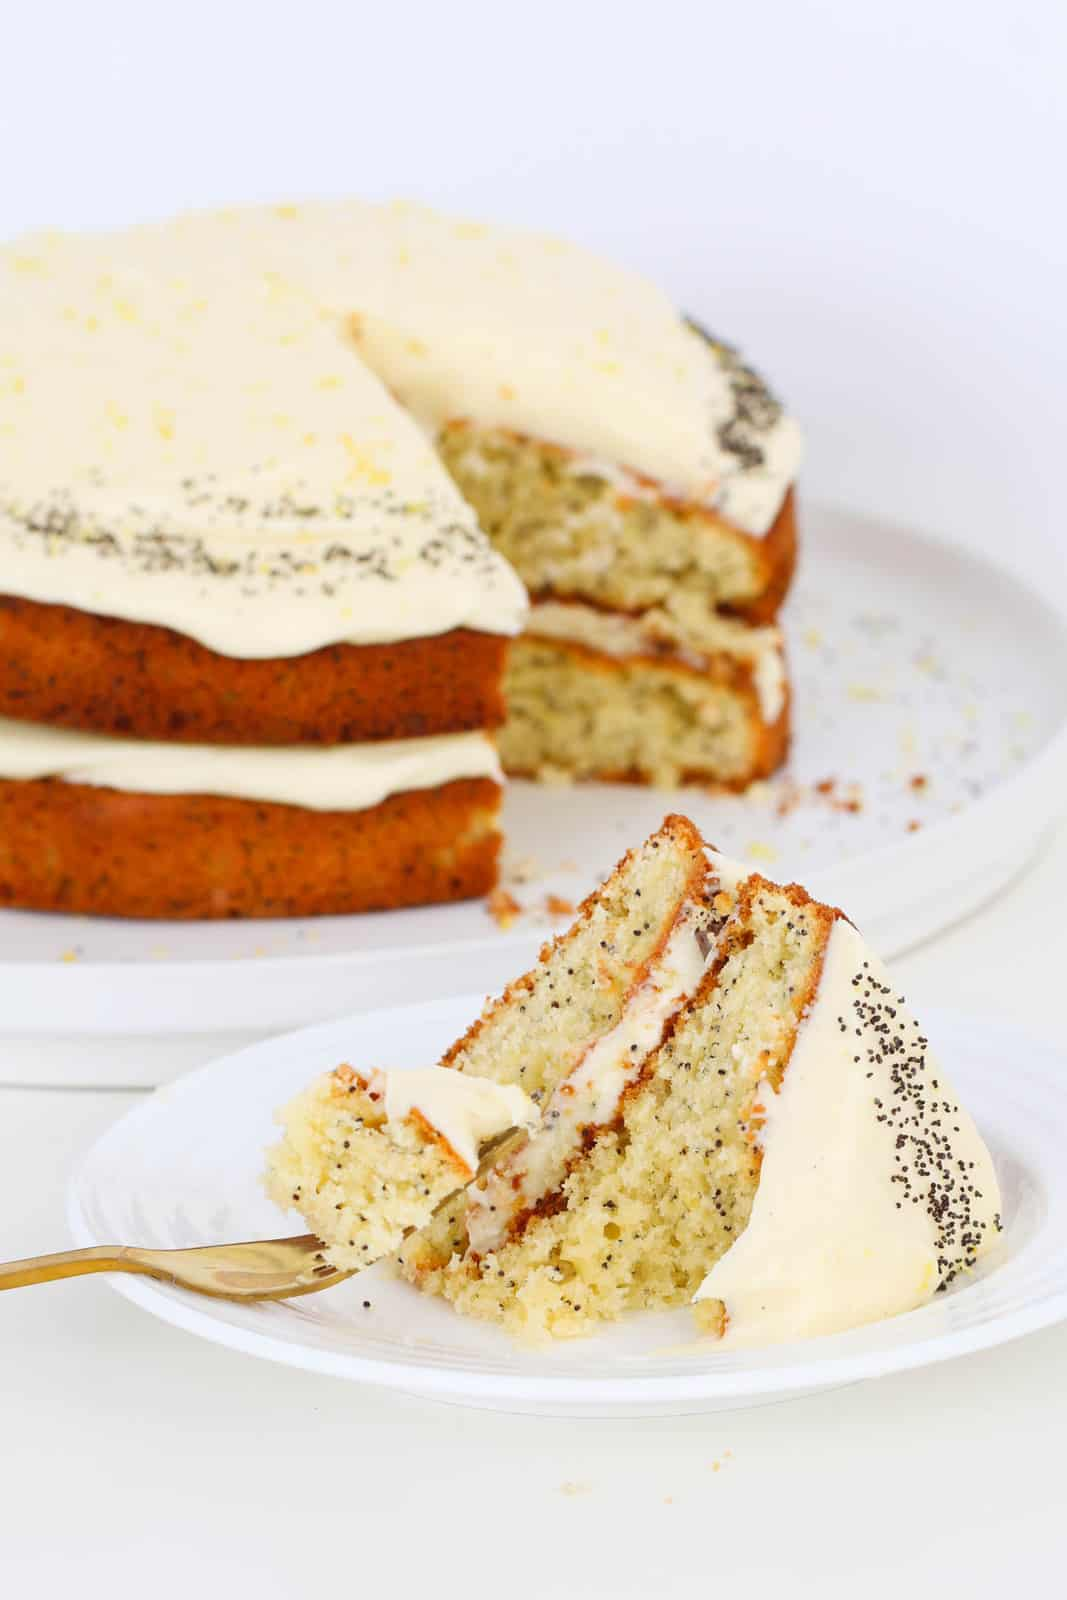 A fork filled with lemon poppy seed cake on a plate, in front of the rest of the cake